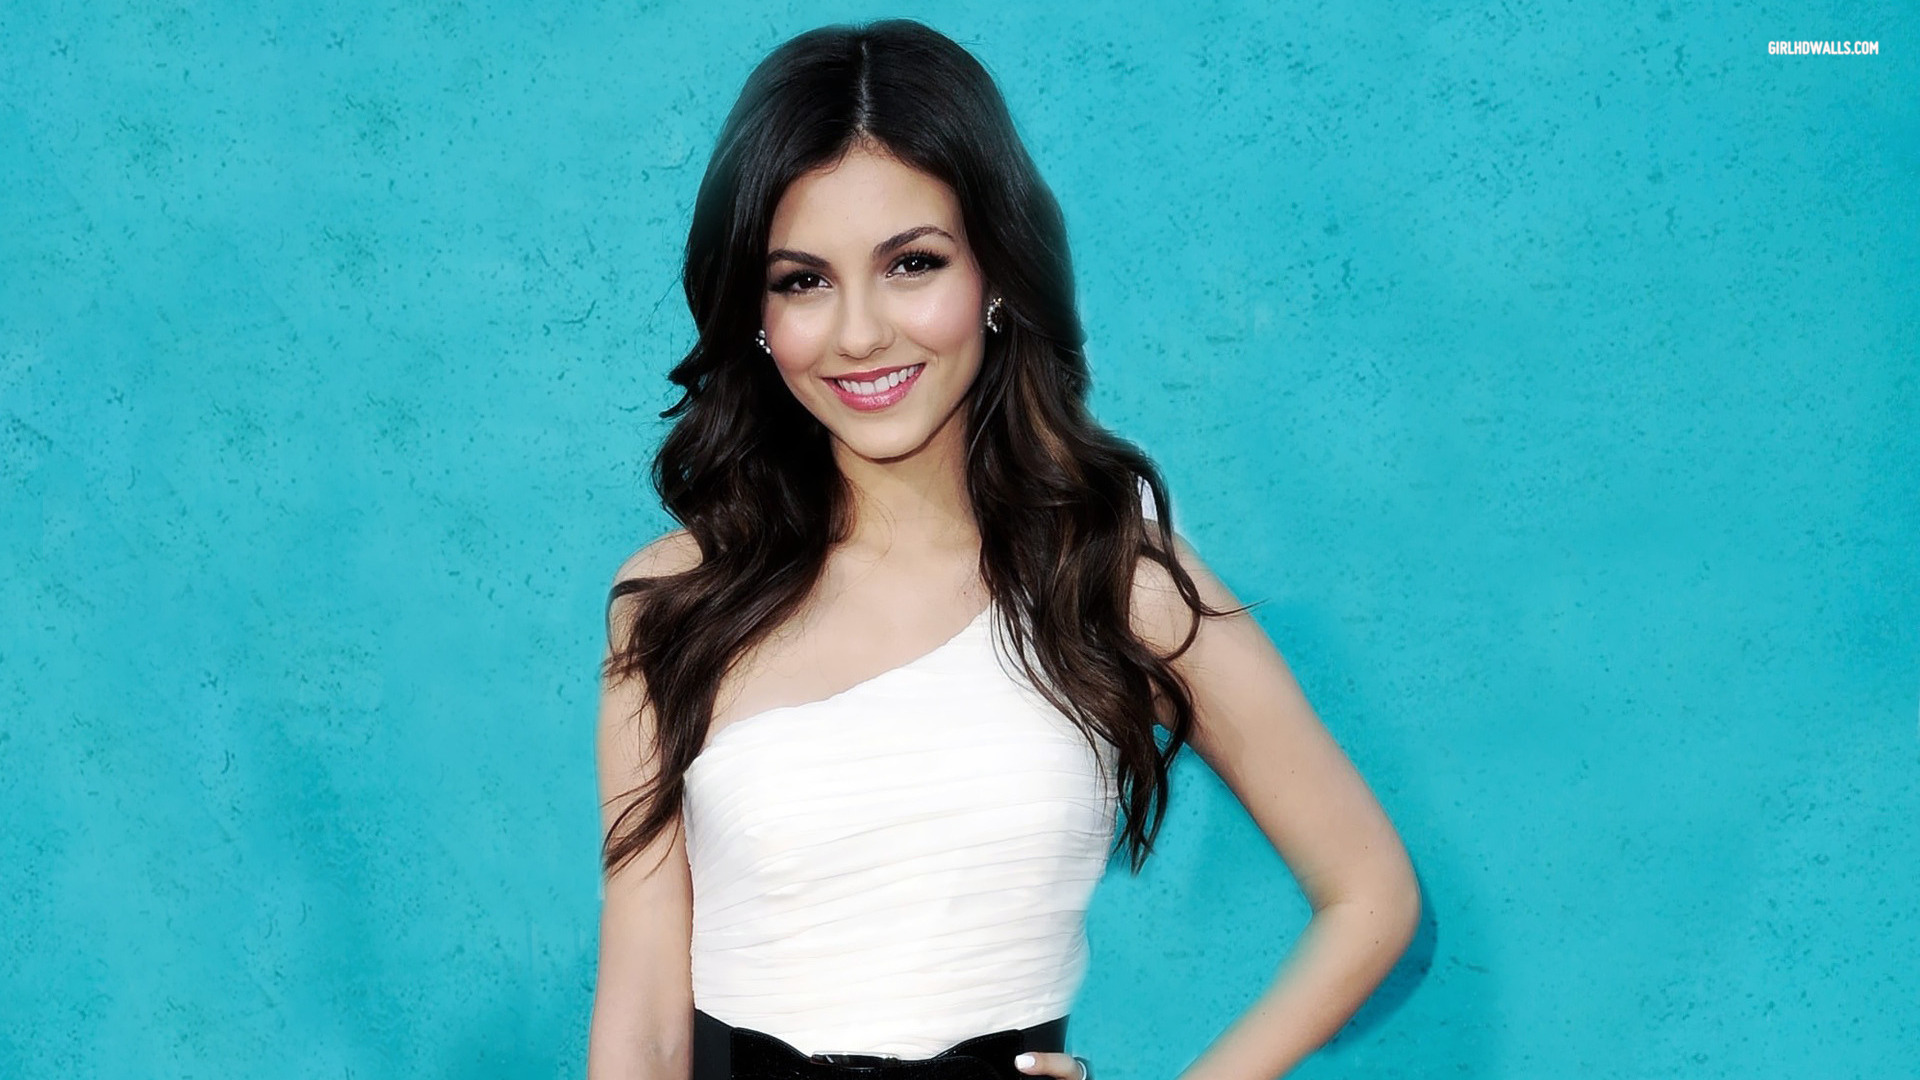 Beautiful Girl Full Screen Wallpaper Victoria Justice Hd Wallpapers Movie Hd Wallpapers